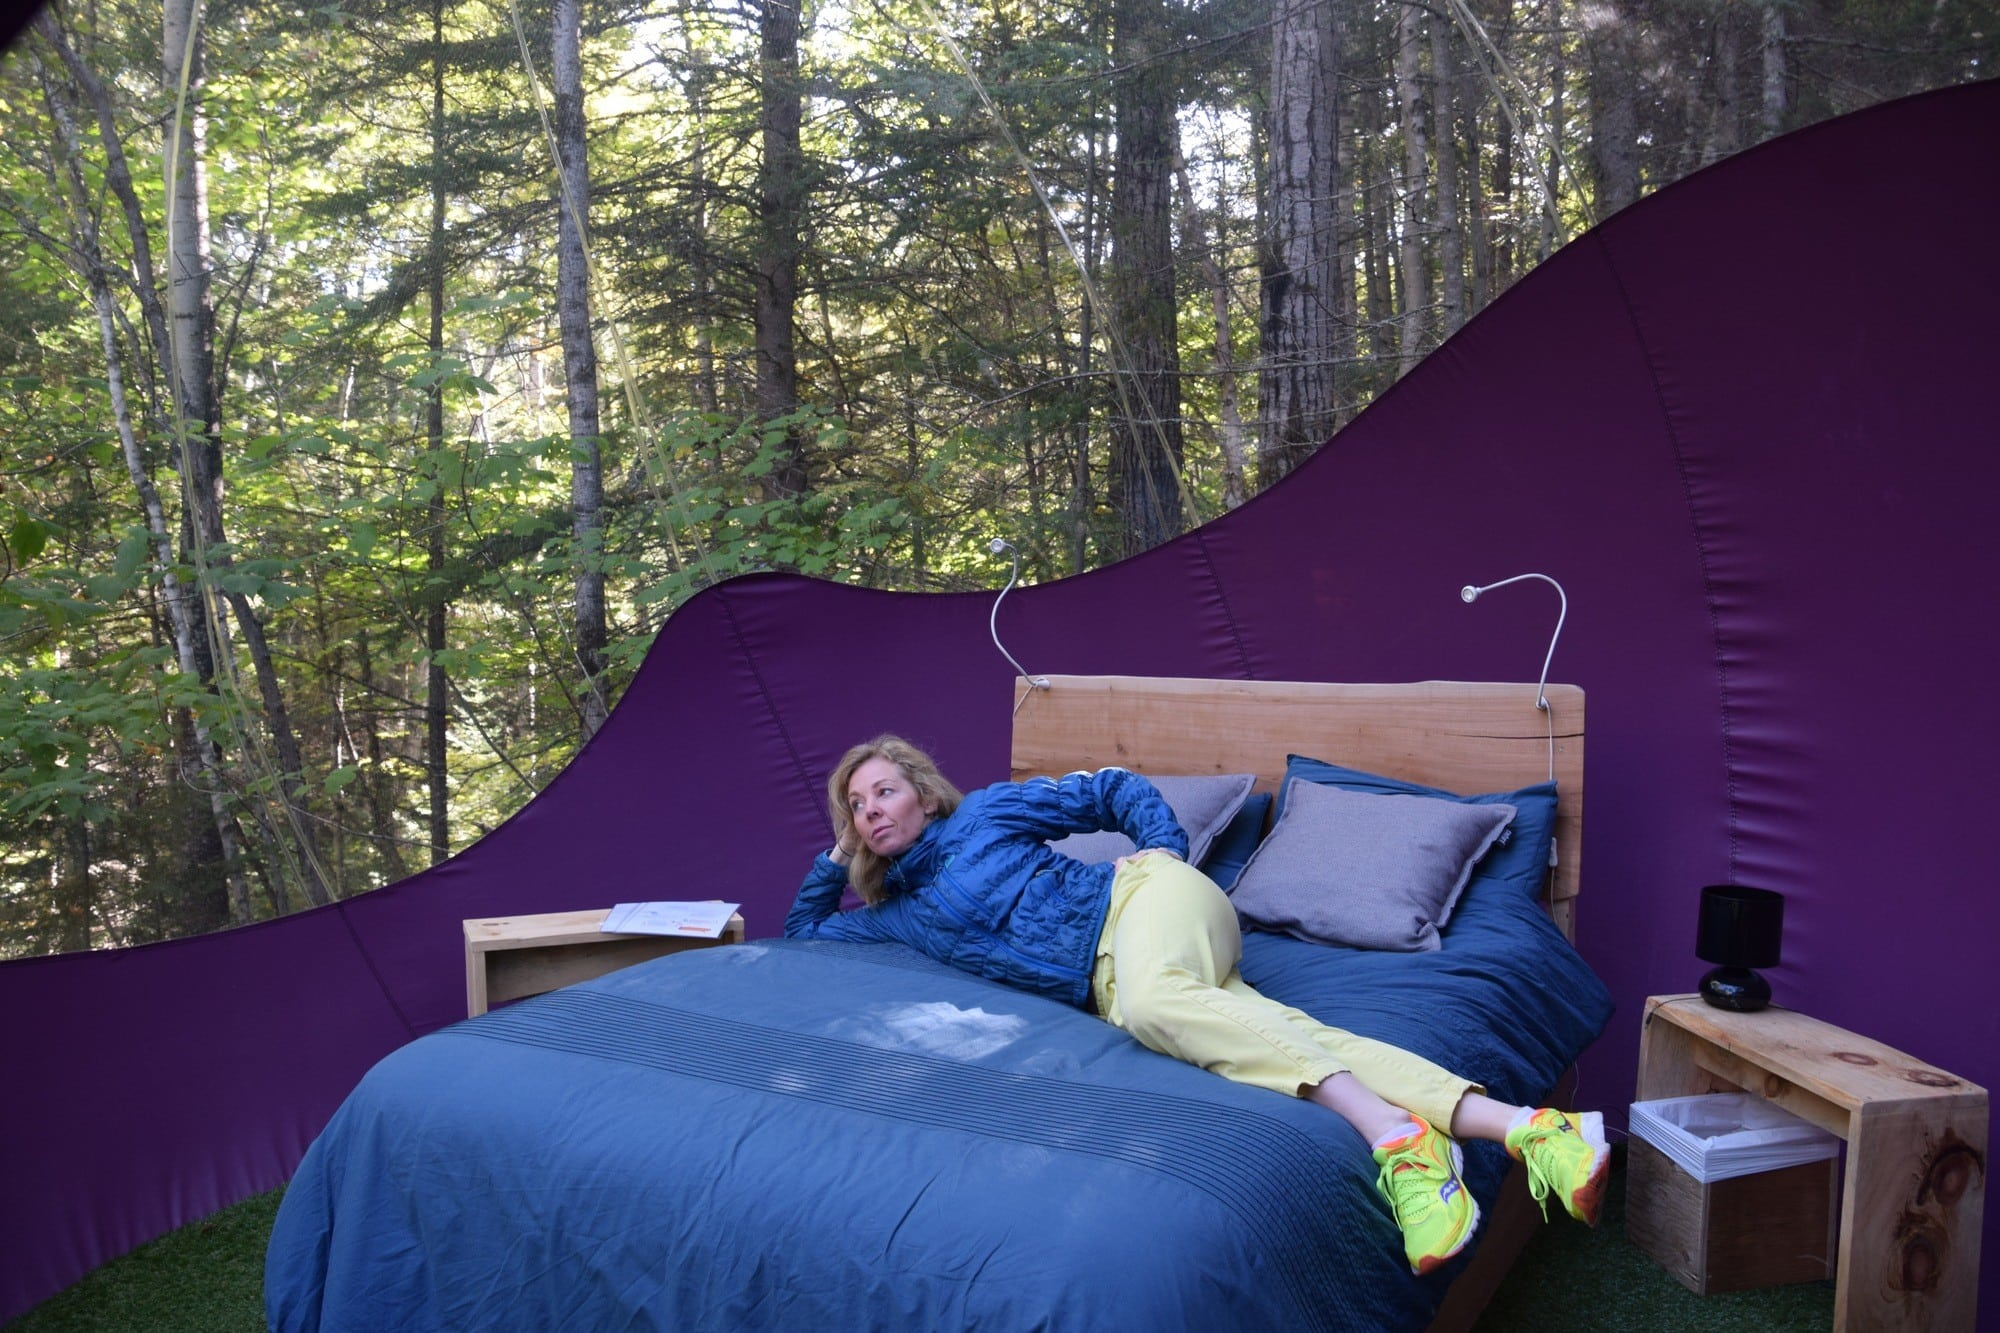 Jody Robbins getting cozy at Canopée Lit in Sacré-Coeur, Quebec while researching 25 Places in Canada Every Family Should Visit